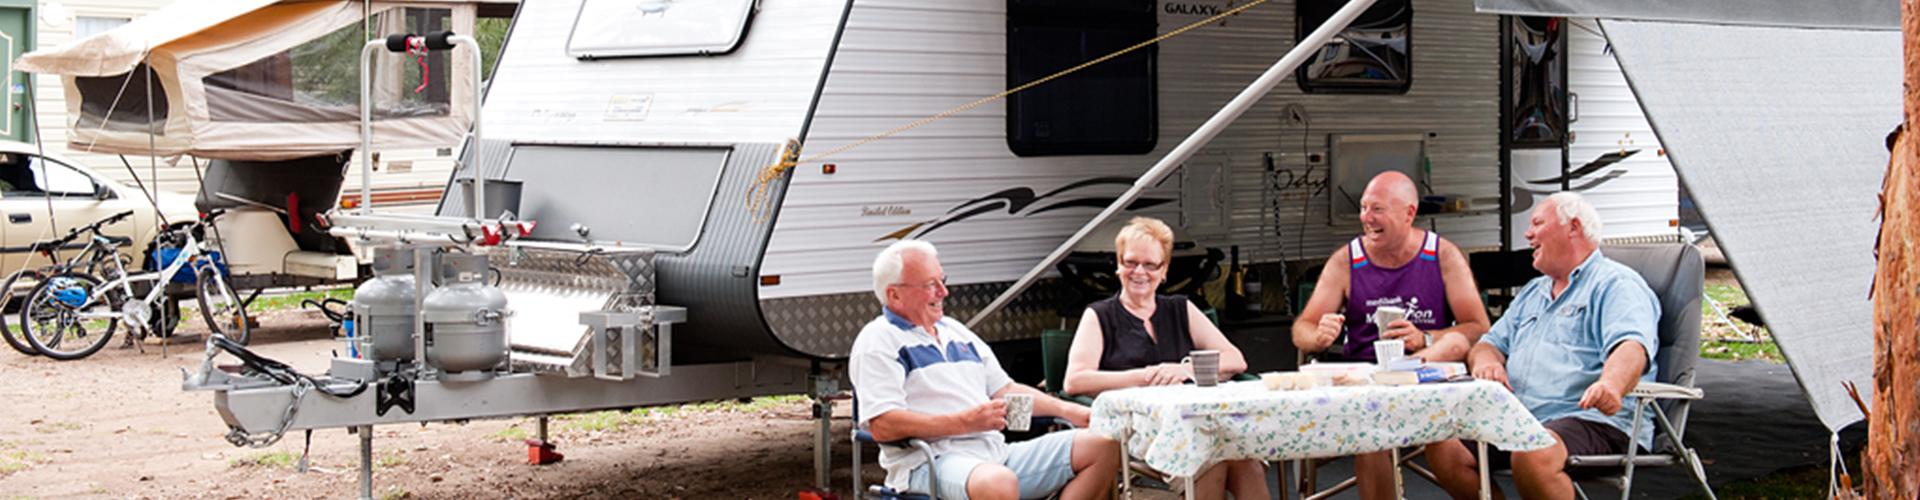 BIG4 Yarra Valley Park Lane Holiday Park - Ensuite Site - Friends Laughing